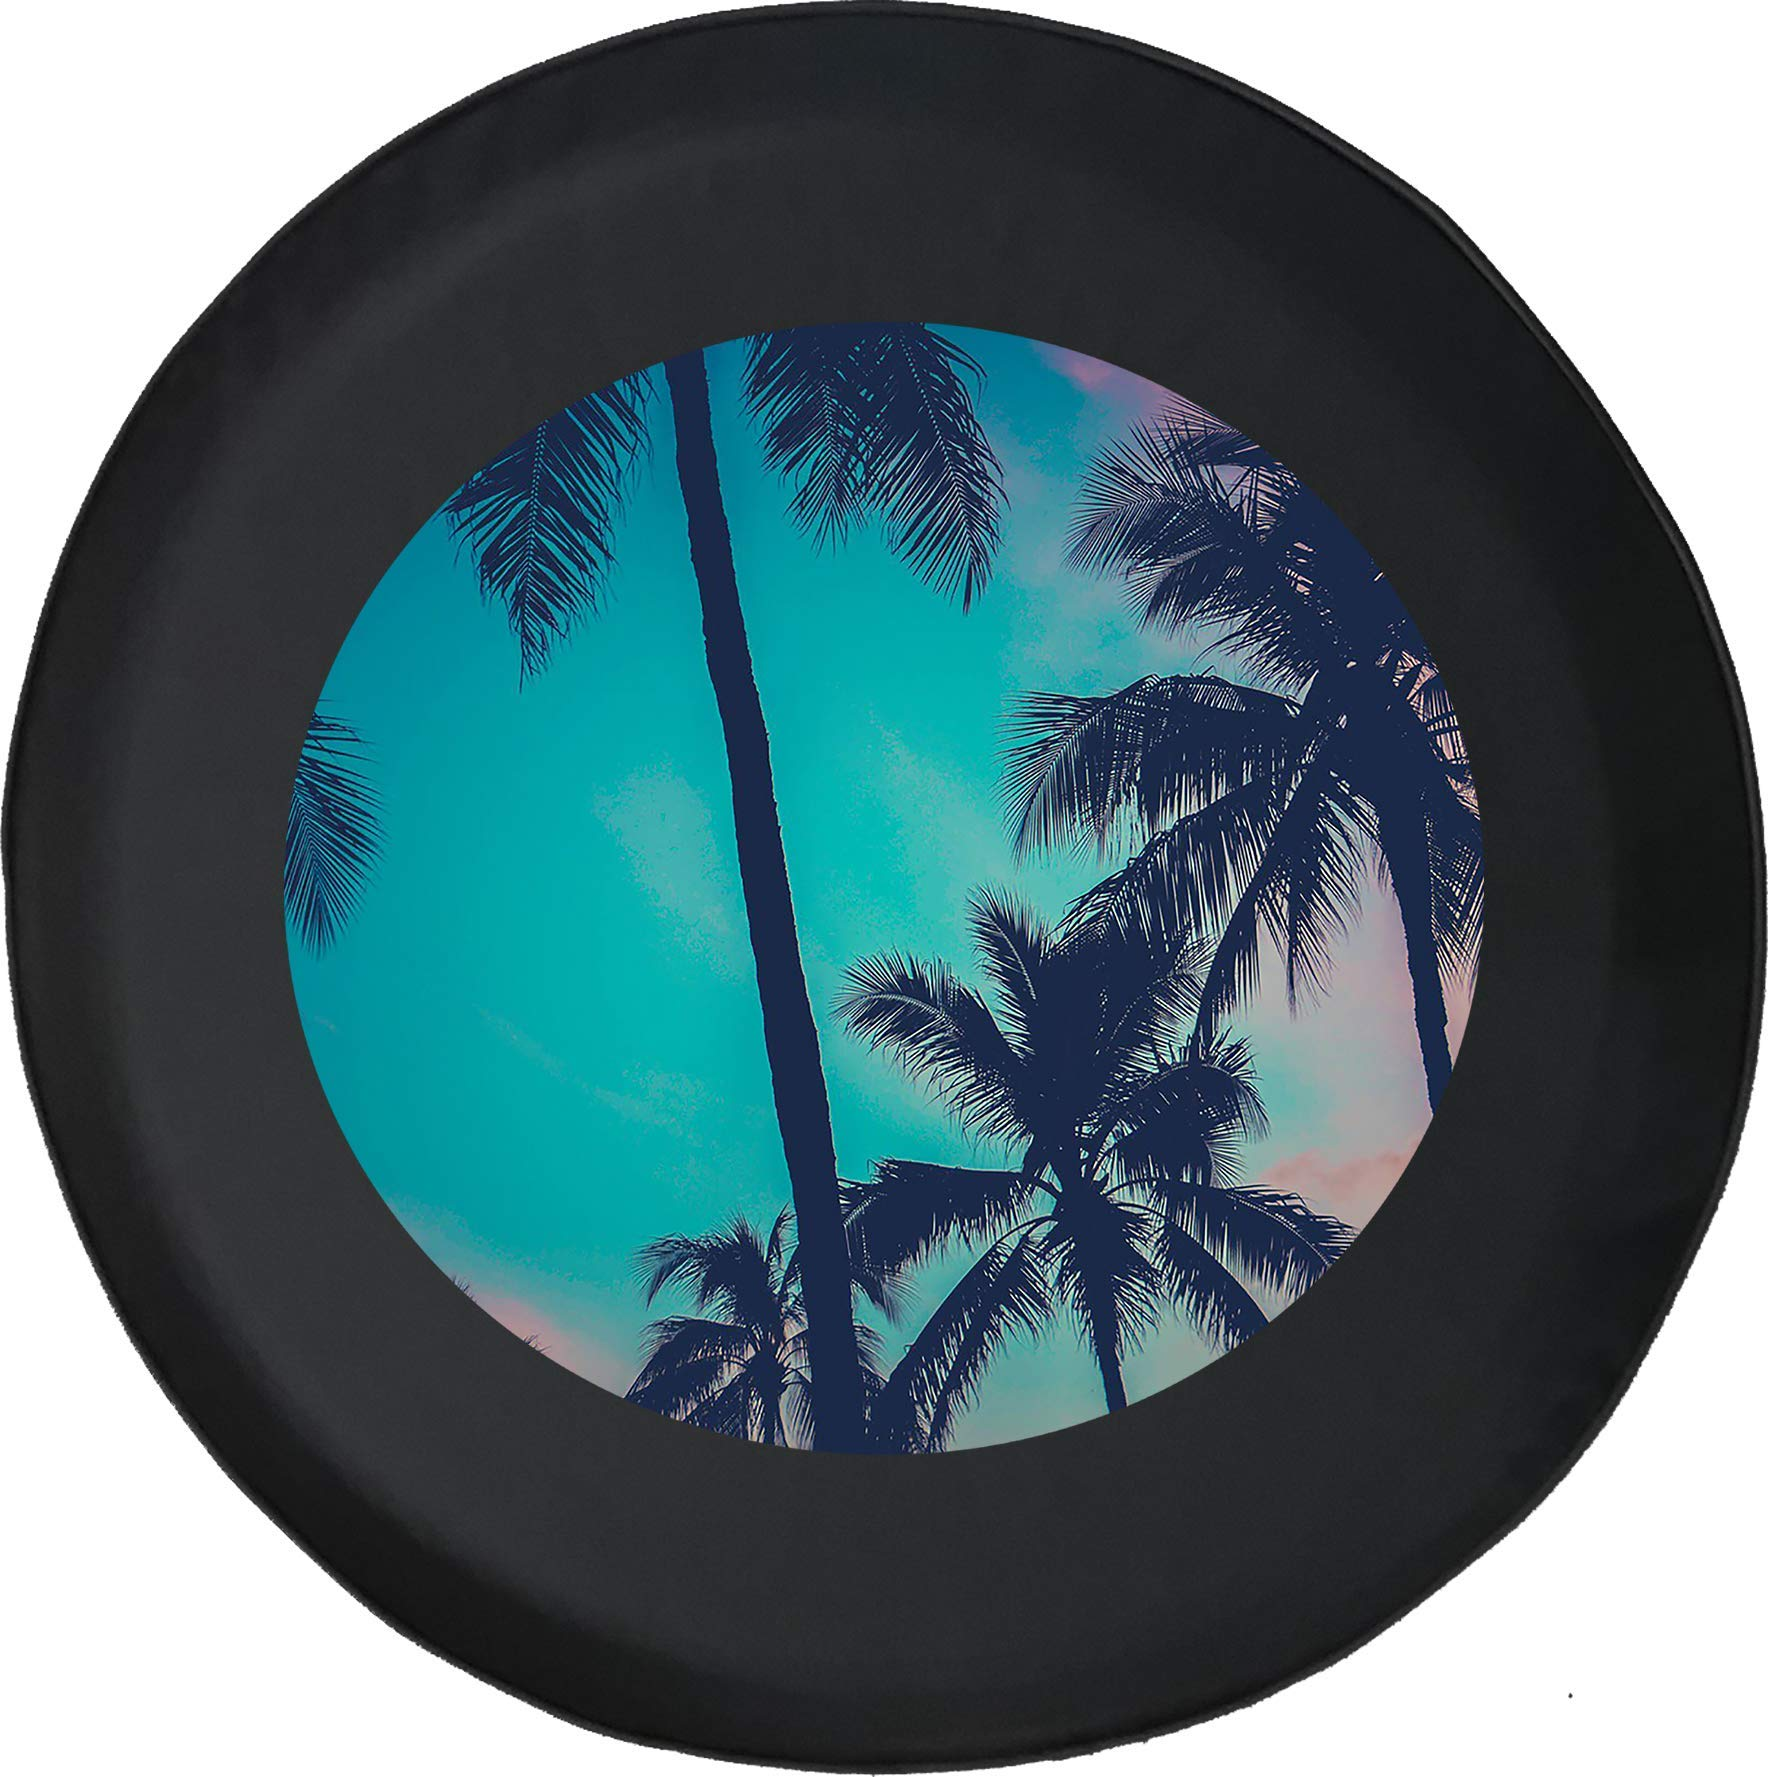 Spare Tire Cover Palm Tree Sunset Beach Adventure Offroad 4x4 Lifted Grill fits SUV or Camper RV Accessories Black Size 28 Inch by Shorian Tire Covers